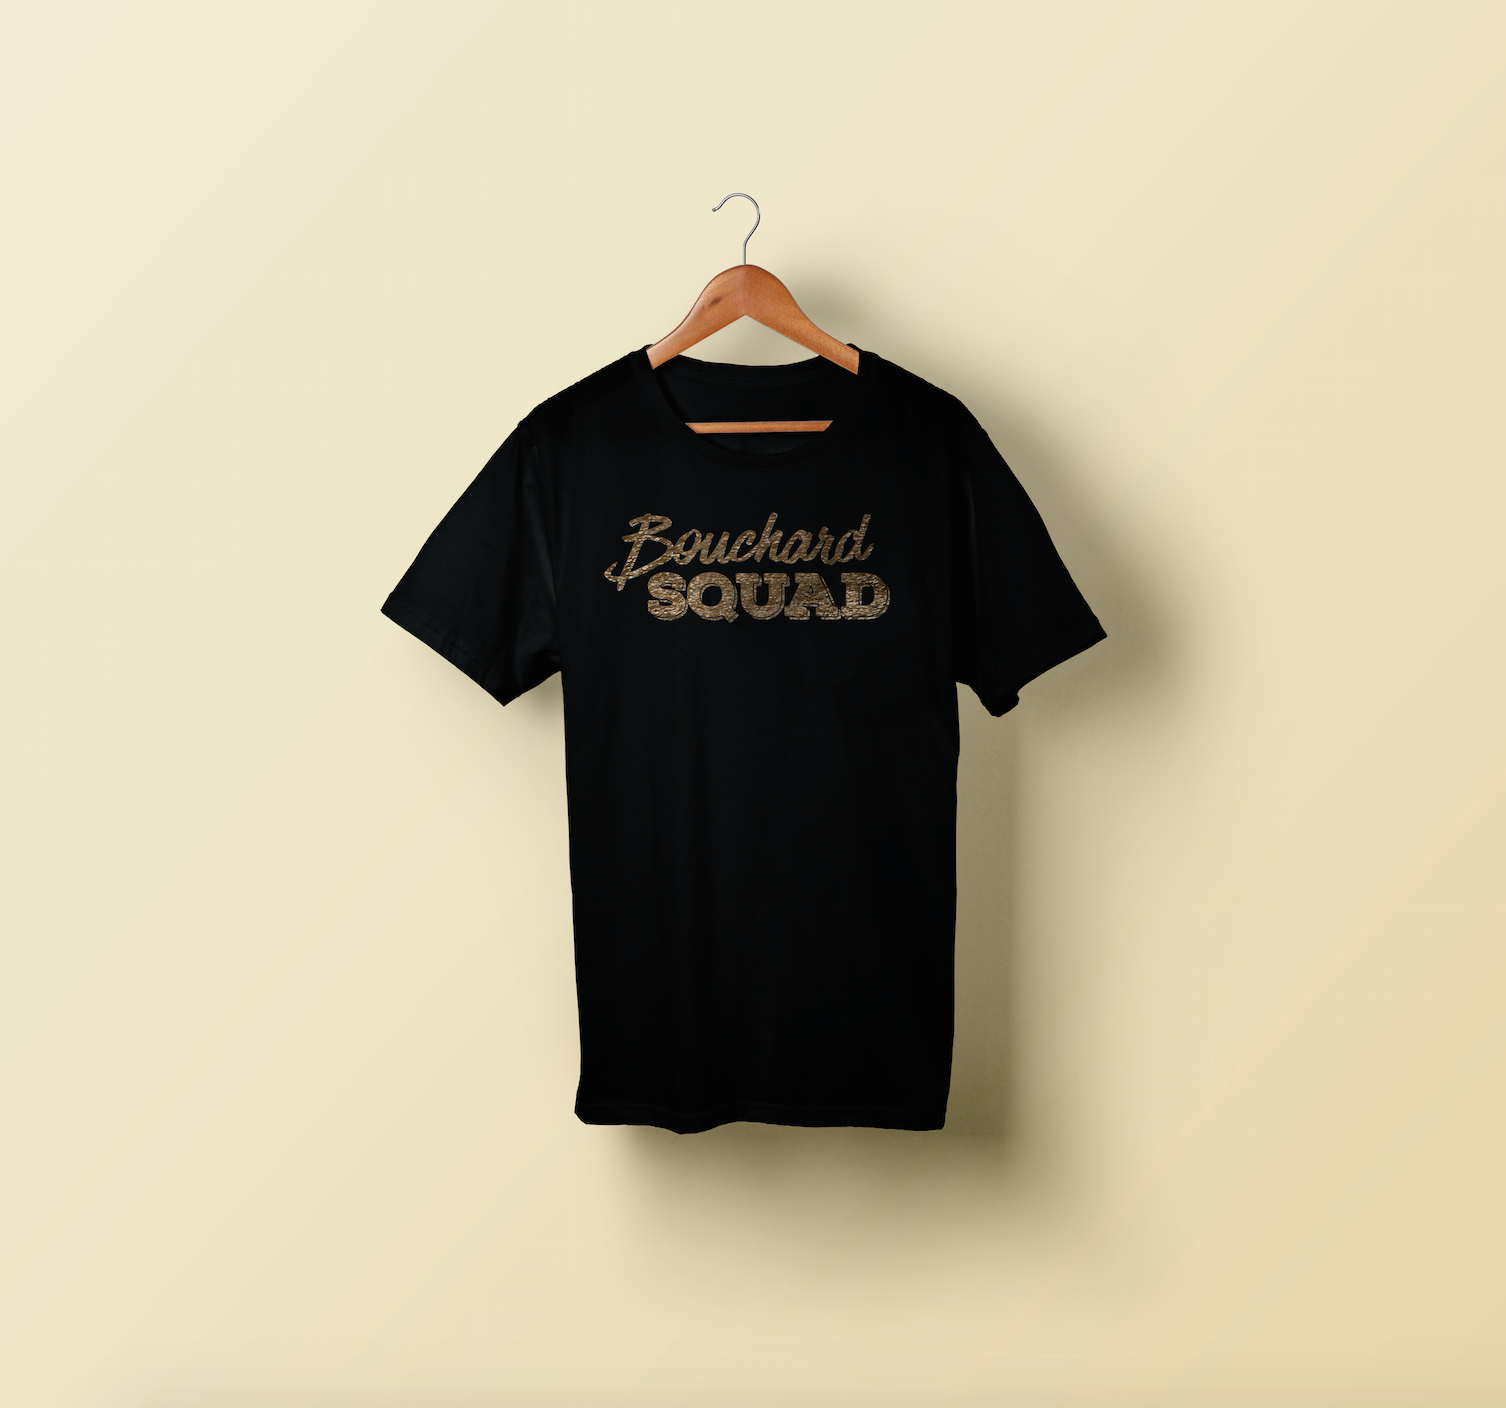 Bouchard Squad Limited Edition T-Shirt (PRE-ORDER **Ships in early April 2016**)